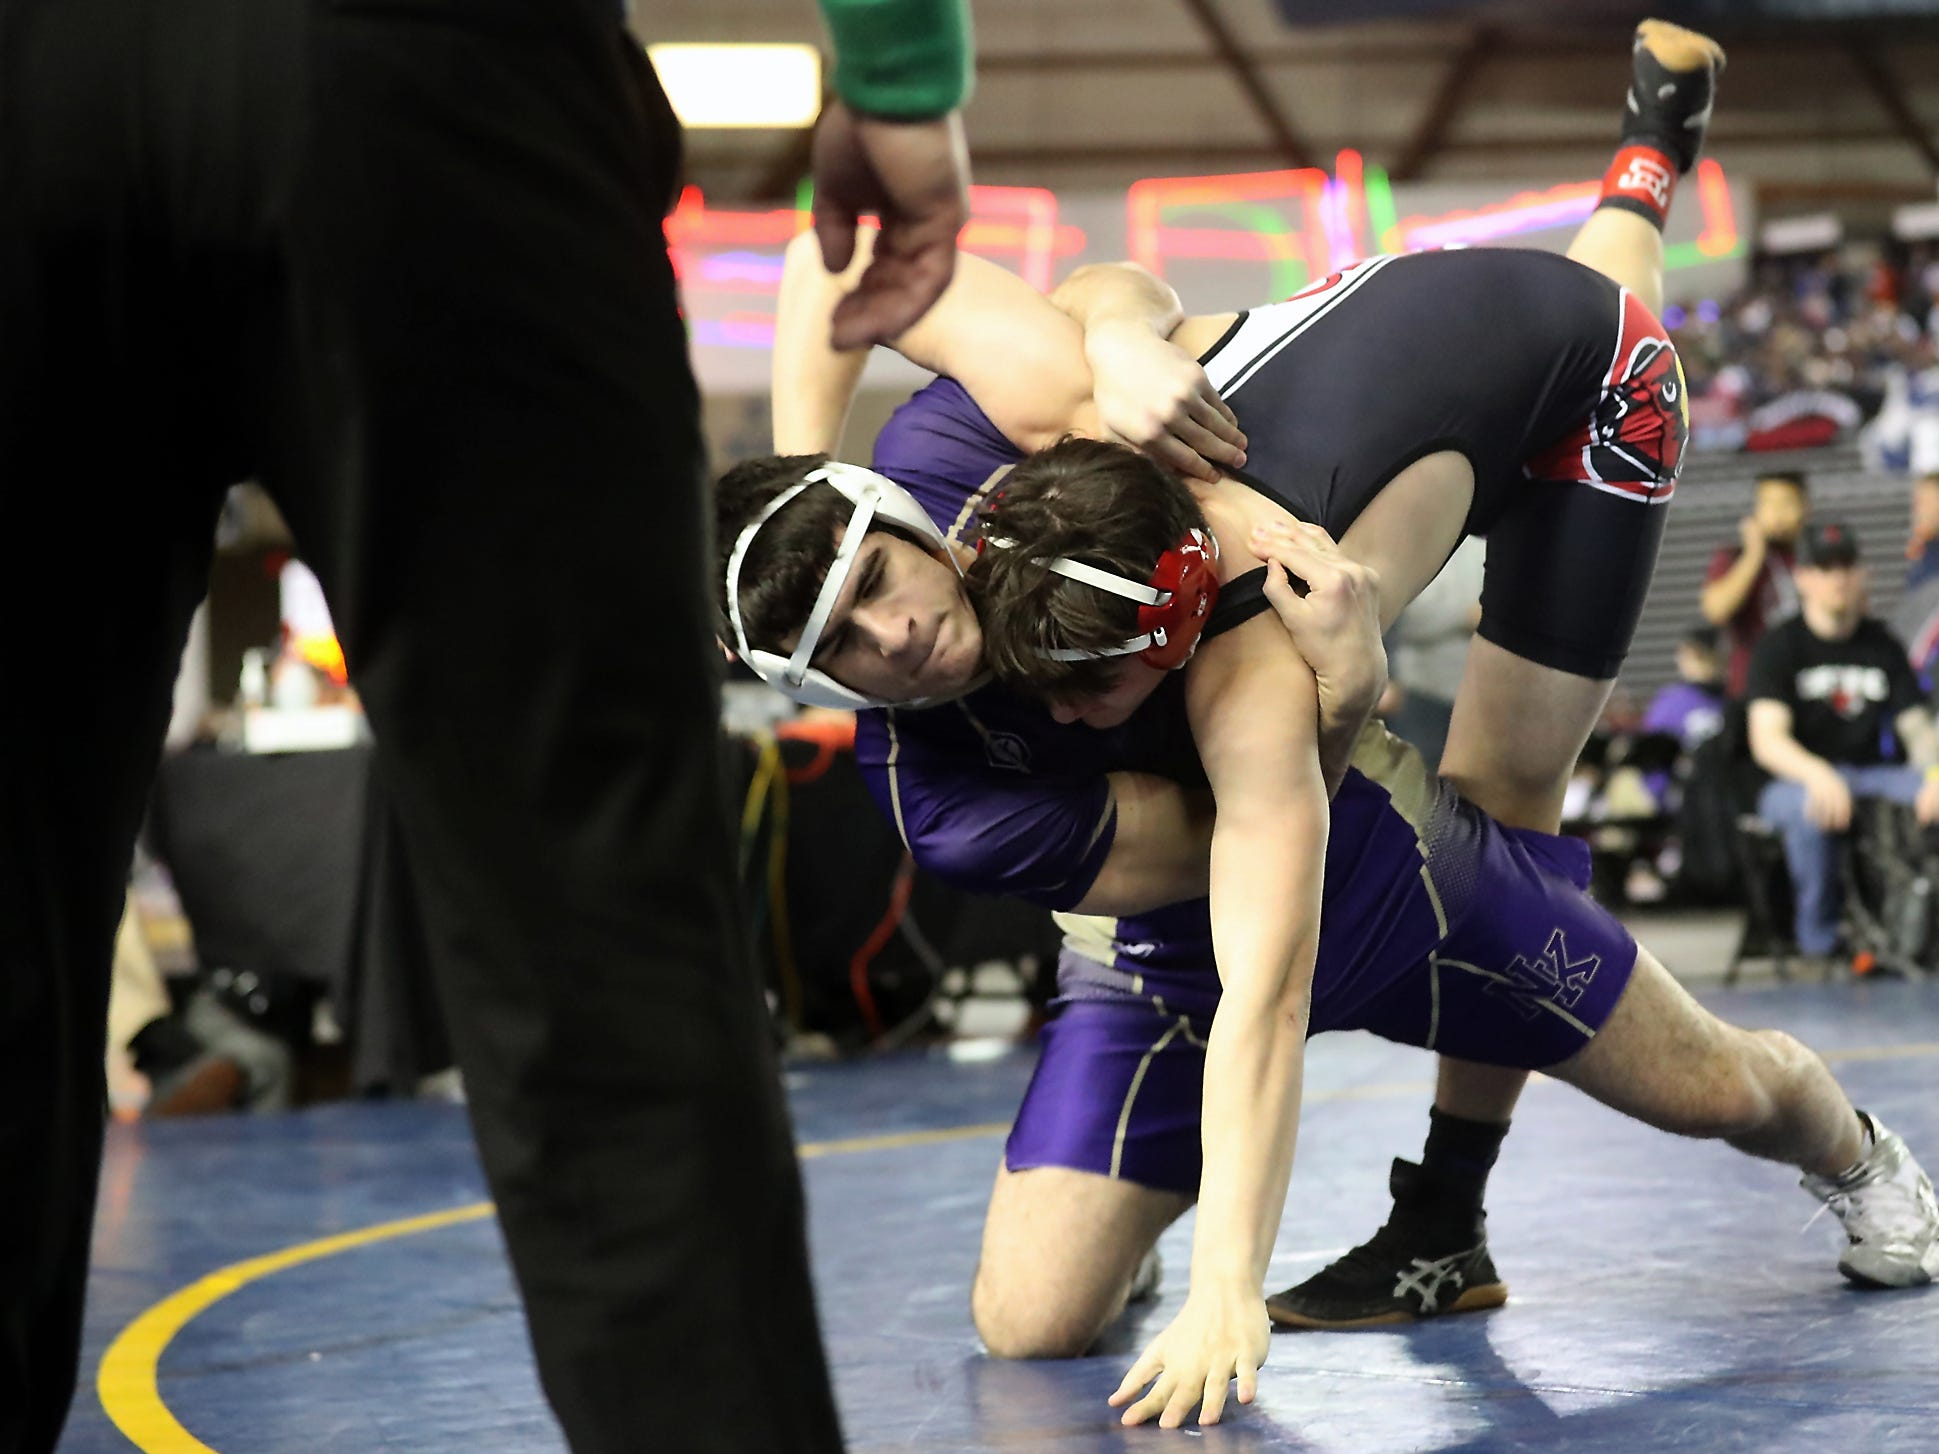 North Kitsap's Nouh Hammou takes down Orting's Daniel Neuman during their 2A 192-pound bout at Mat Classic on Friday, February 15, 2019.